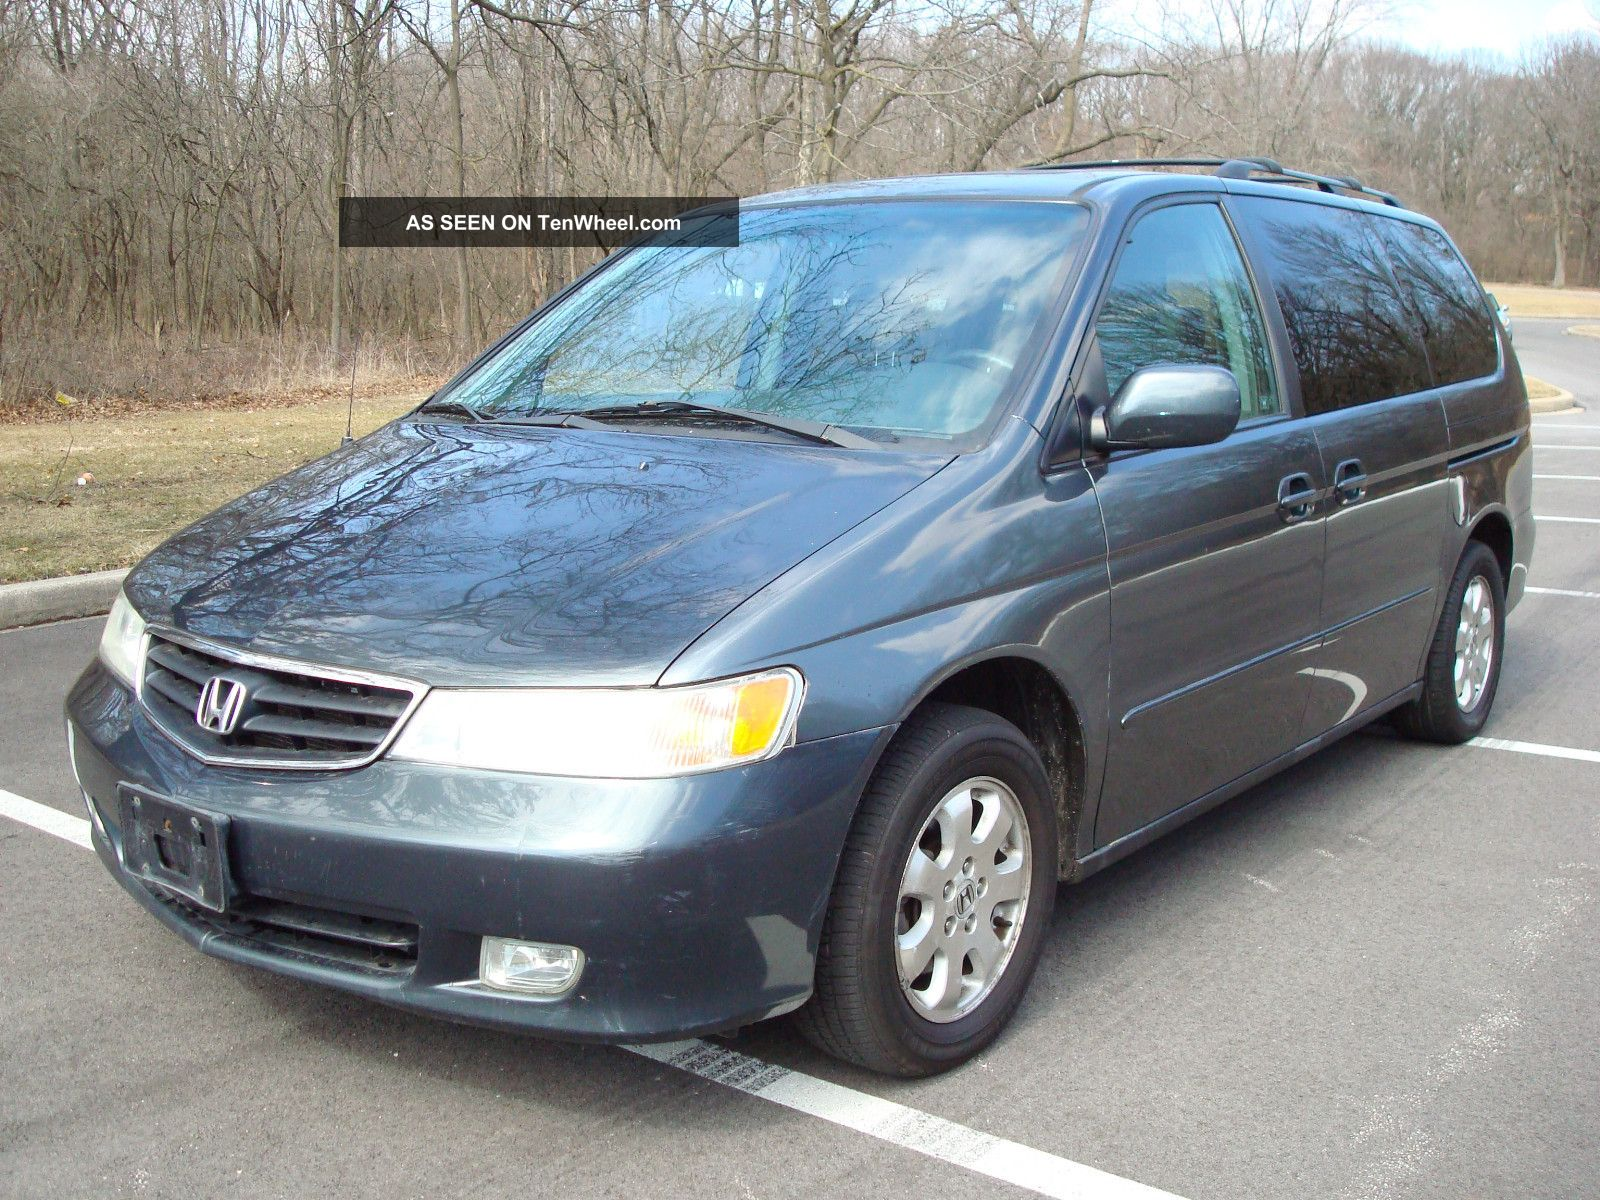 2004 honda odyssey headlight wiring diagram bmw online toyota tundra ignition free engine image